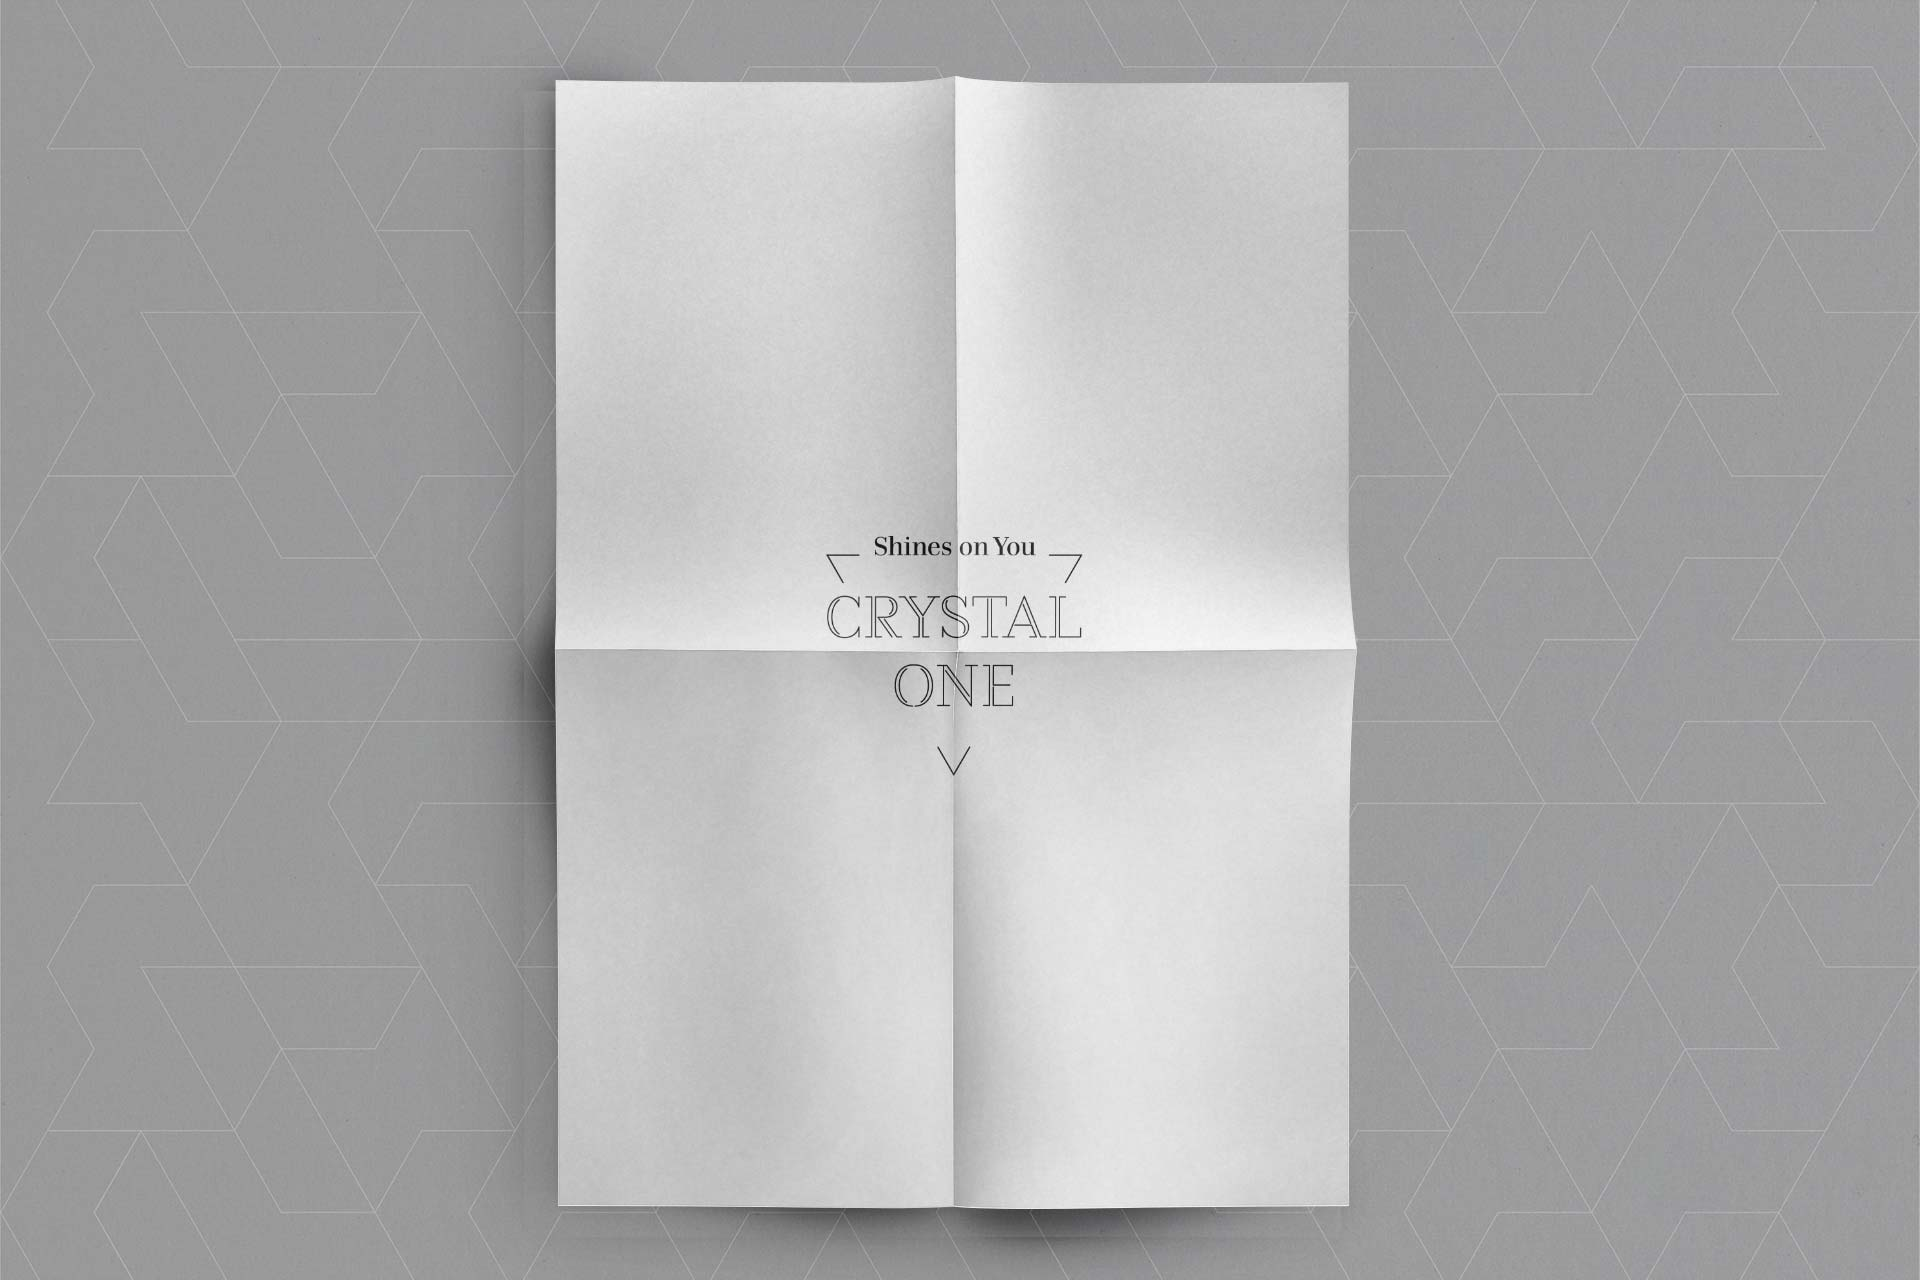 Crystal One